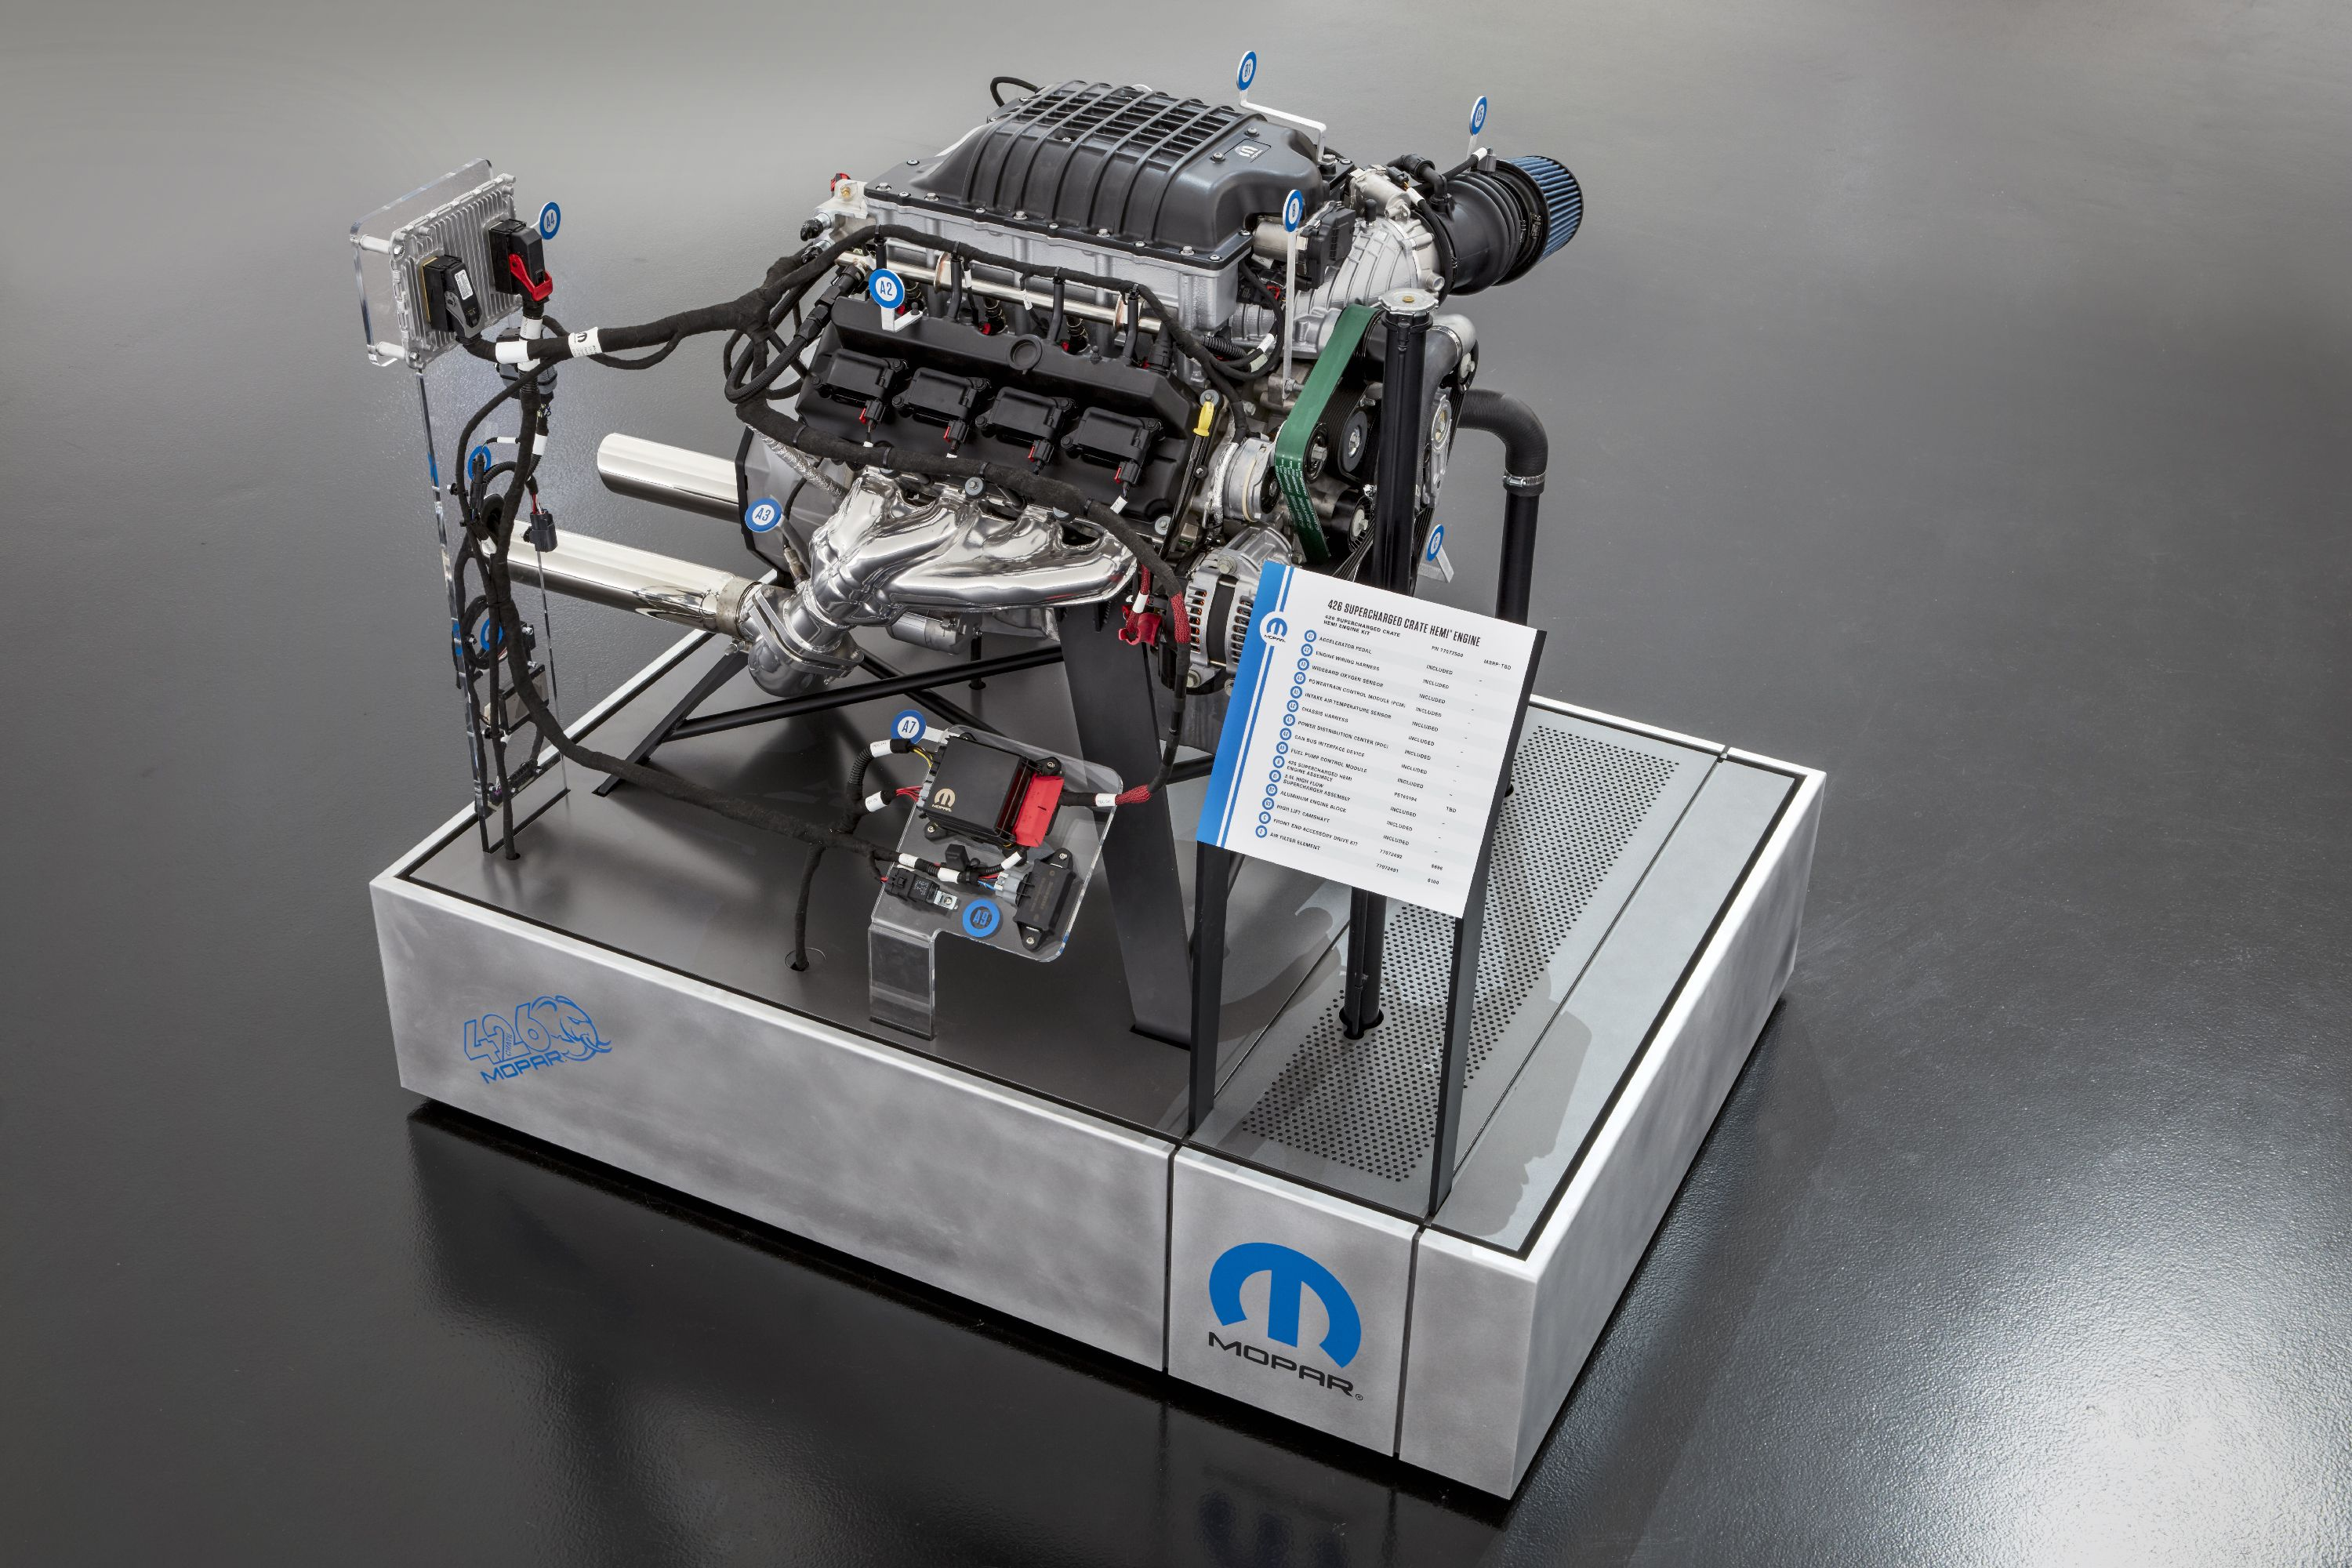 Sold! Entire Run of 1000-HP Mopar 426 Hellephant Supercharged Hemi Crate Engines Spoken For